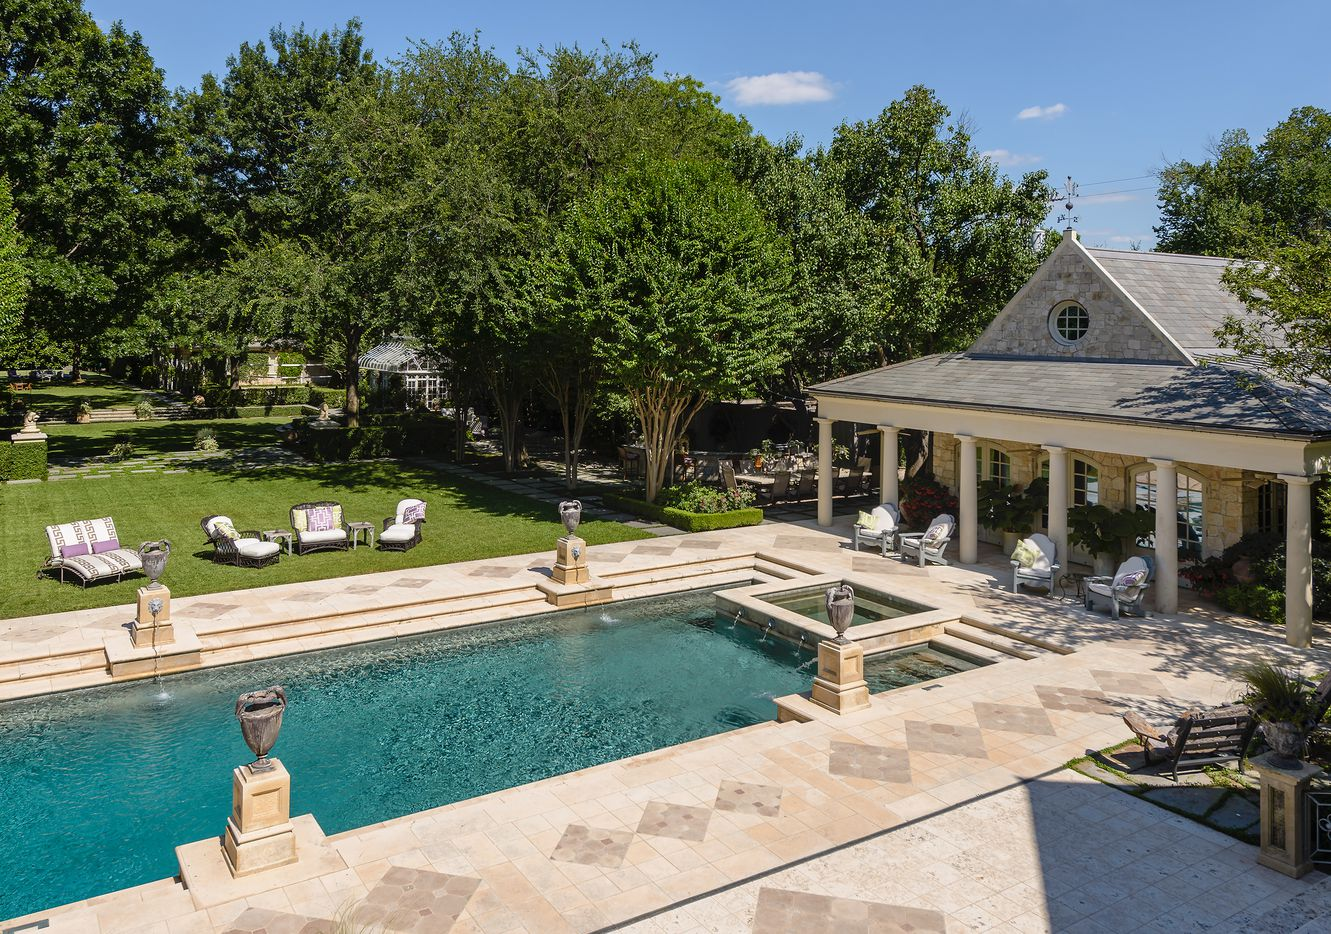 Along with the pool house there are guest quarters and two spa areas.